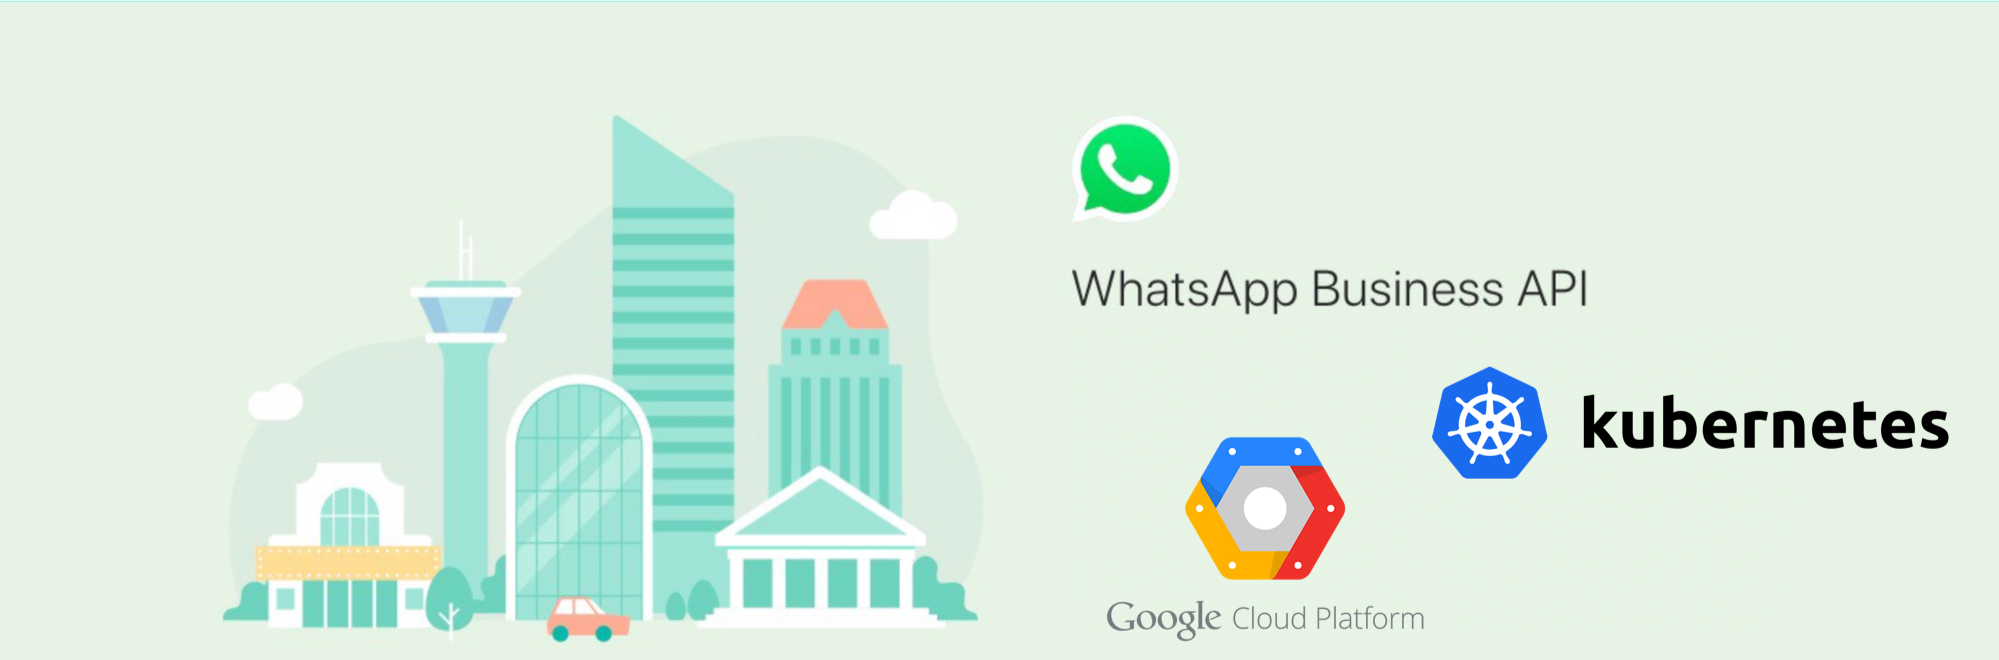 Deploying The Whatsapp Business Api Using Kubernetes Engine On Google Cloud Platform By Guilherme De Jesus Rafael Faun Medium